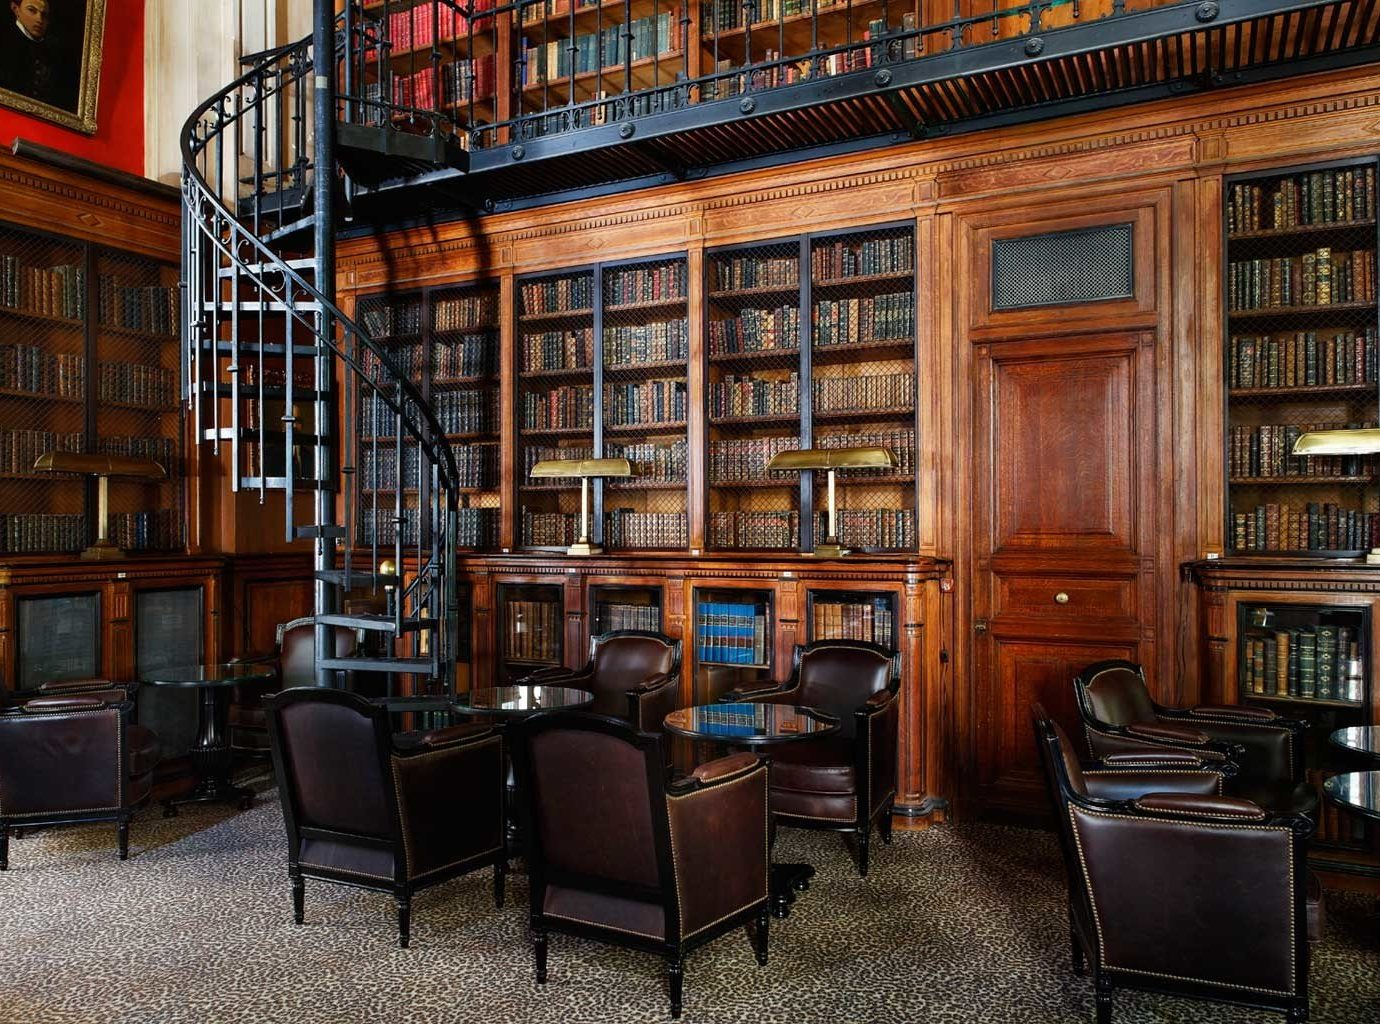 Bar Boutique Hotels City Drink Elegant France Historic Hotels Lounge Paris Romantic chair library room building scene shelf public library bookselling interior design home furniture